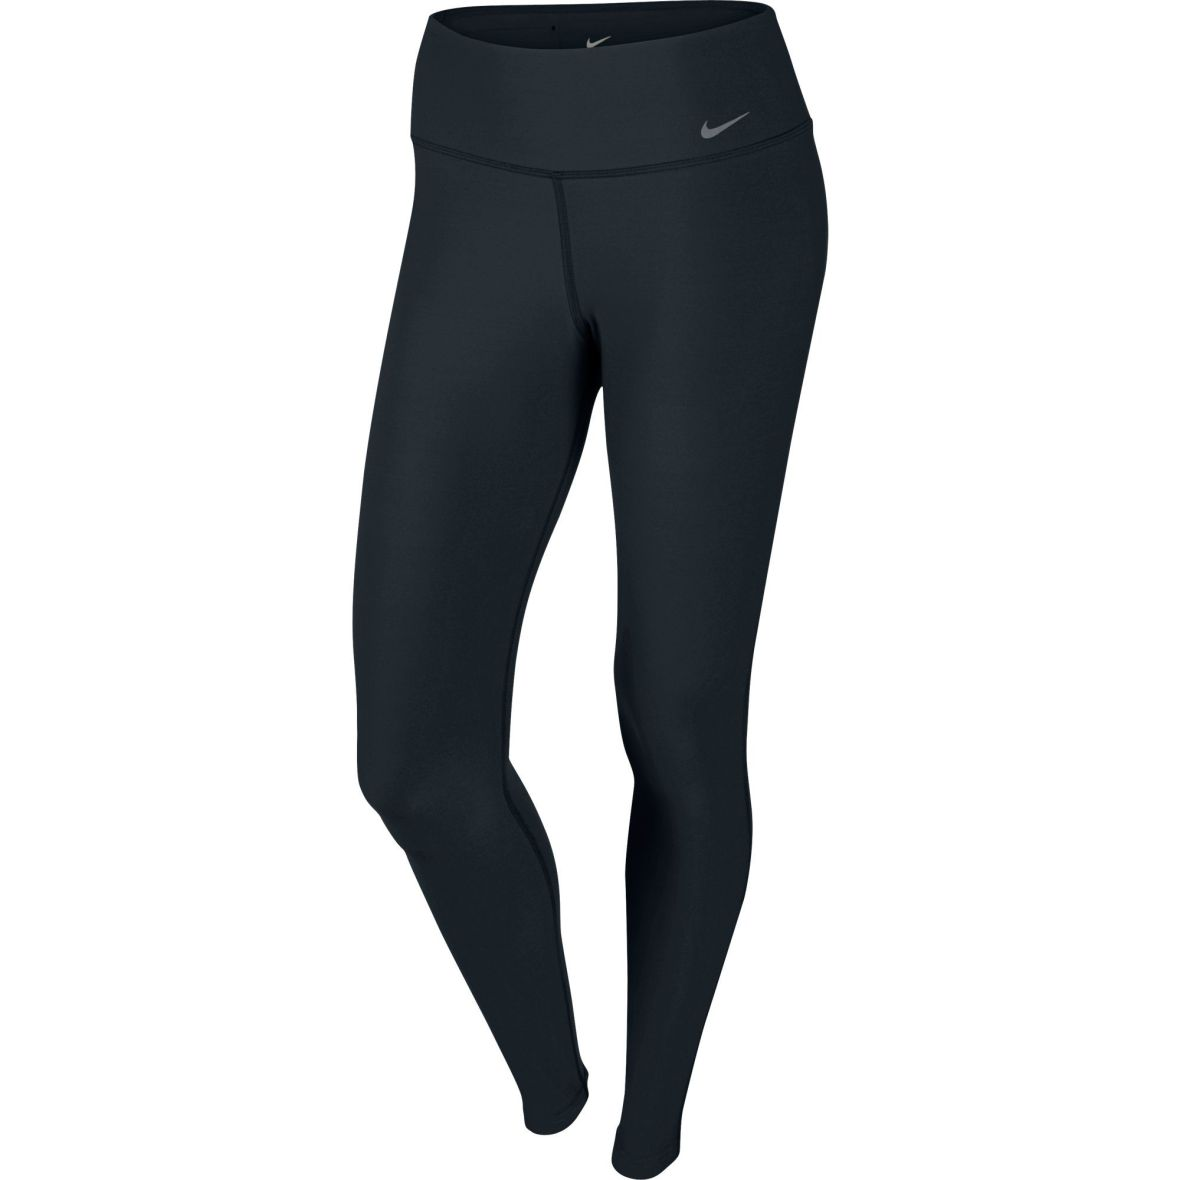 Nike-Women-s-Legend-2-0-Ti-Poly-Pant-SU15-Running-Tights-Black-Grey-Q2-15-548510-010nikepant